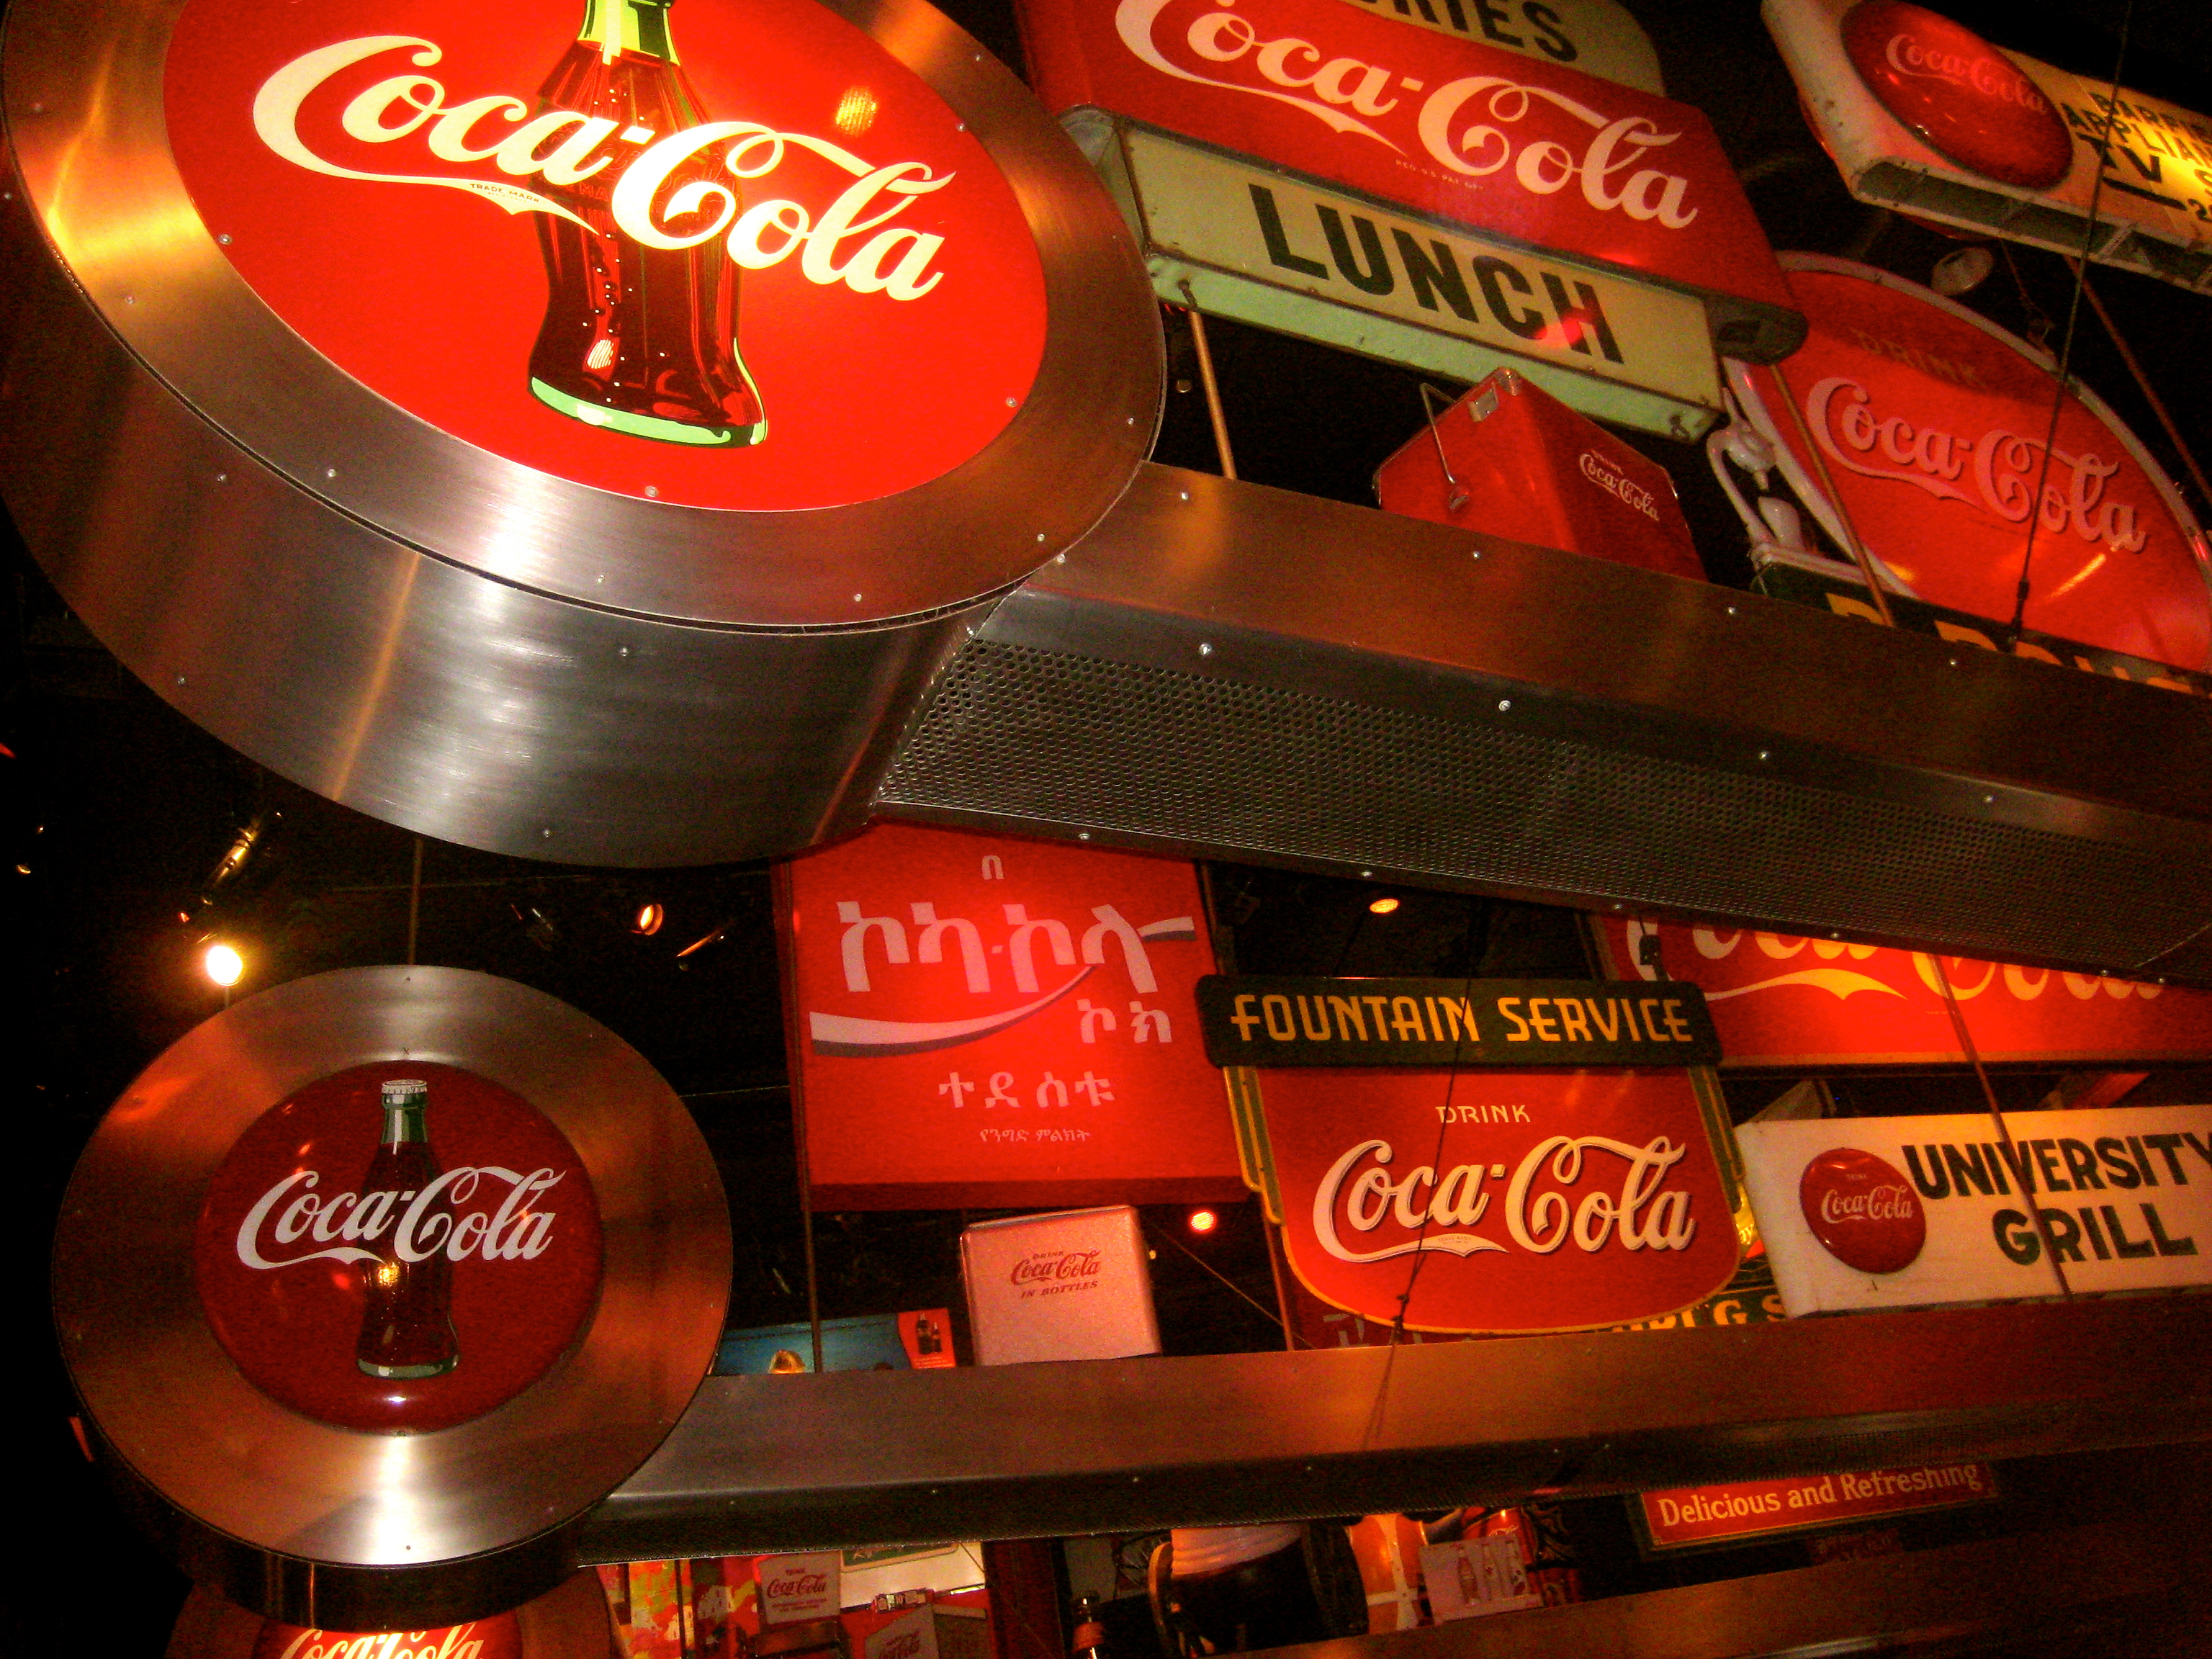 history and description of coca cola Chattanooga was the 1st coca-cola bottling company clear bottles were usually found northeast of atlanta, ga and amber bottles were usually found southwest of knoxville, tn evolution bottle #3a - years: 1900 - 1915.